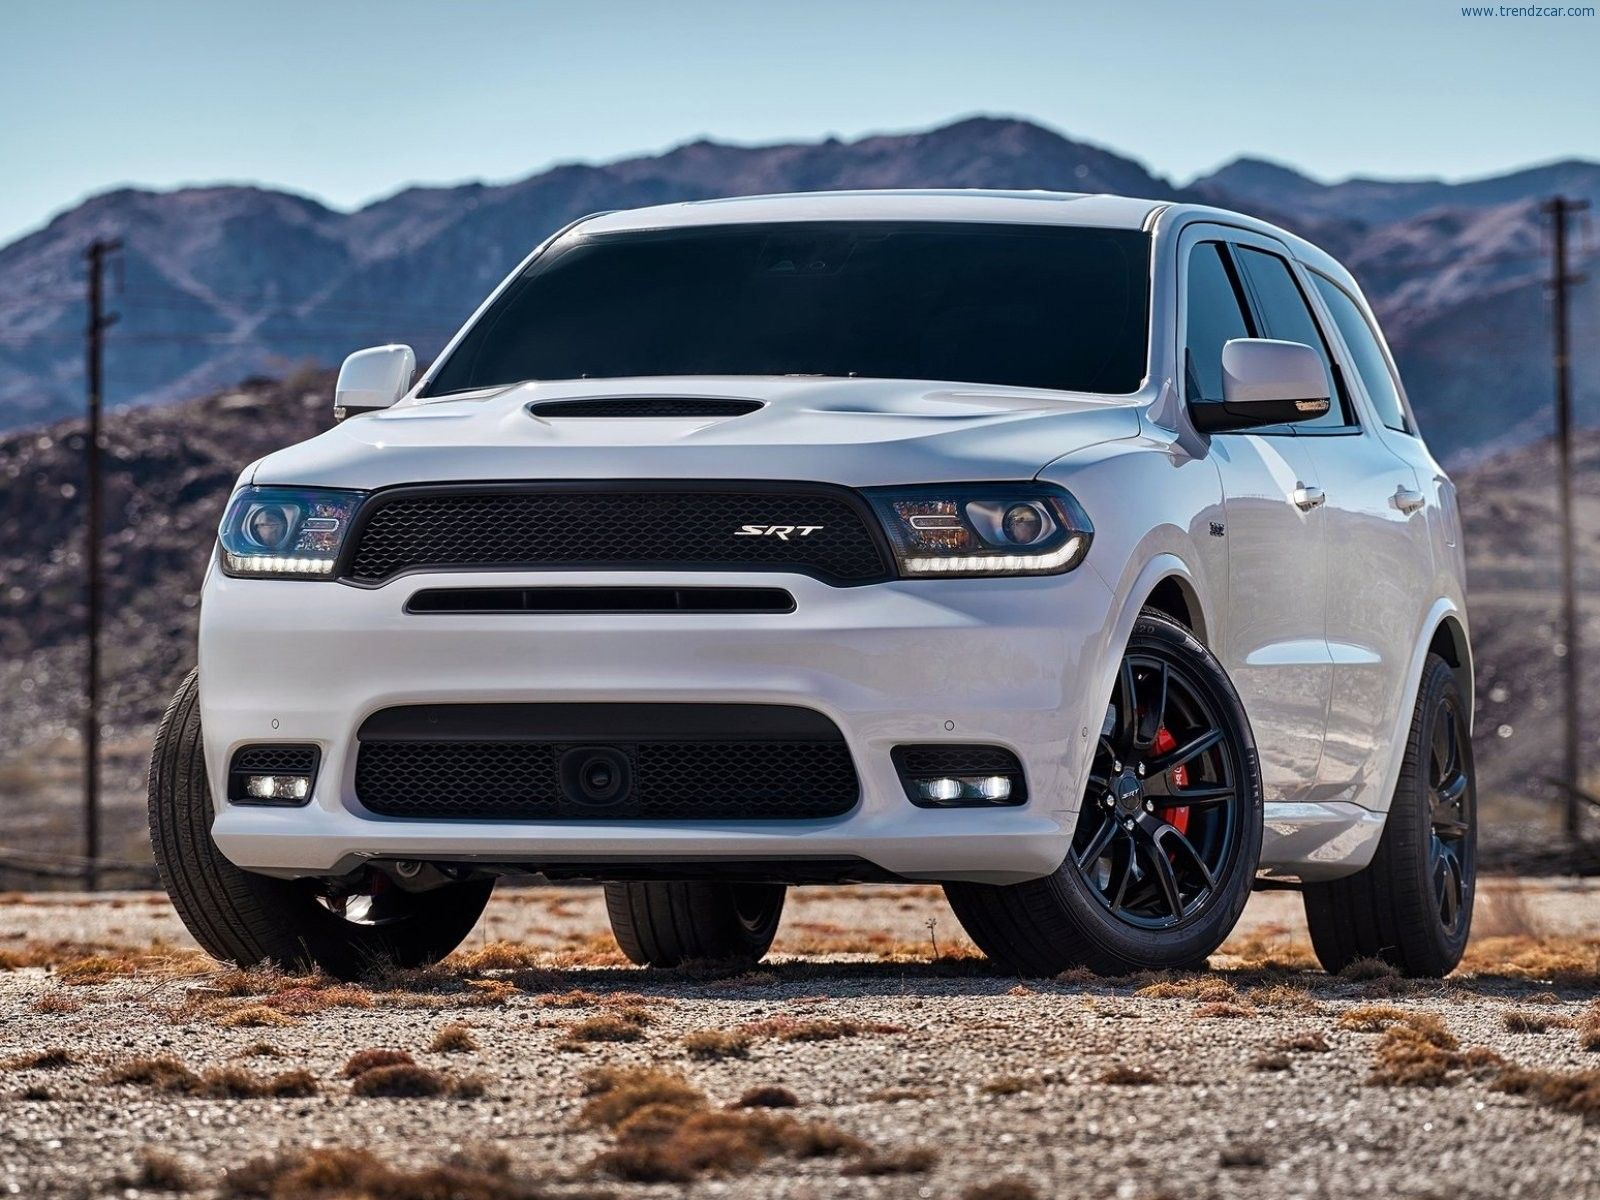 2018 Dodge Durango Srt Dodge Durango Jeep Dodge Dodge